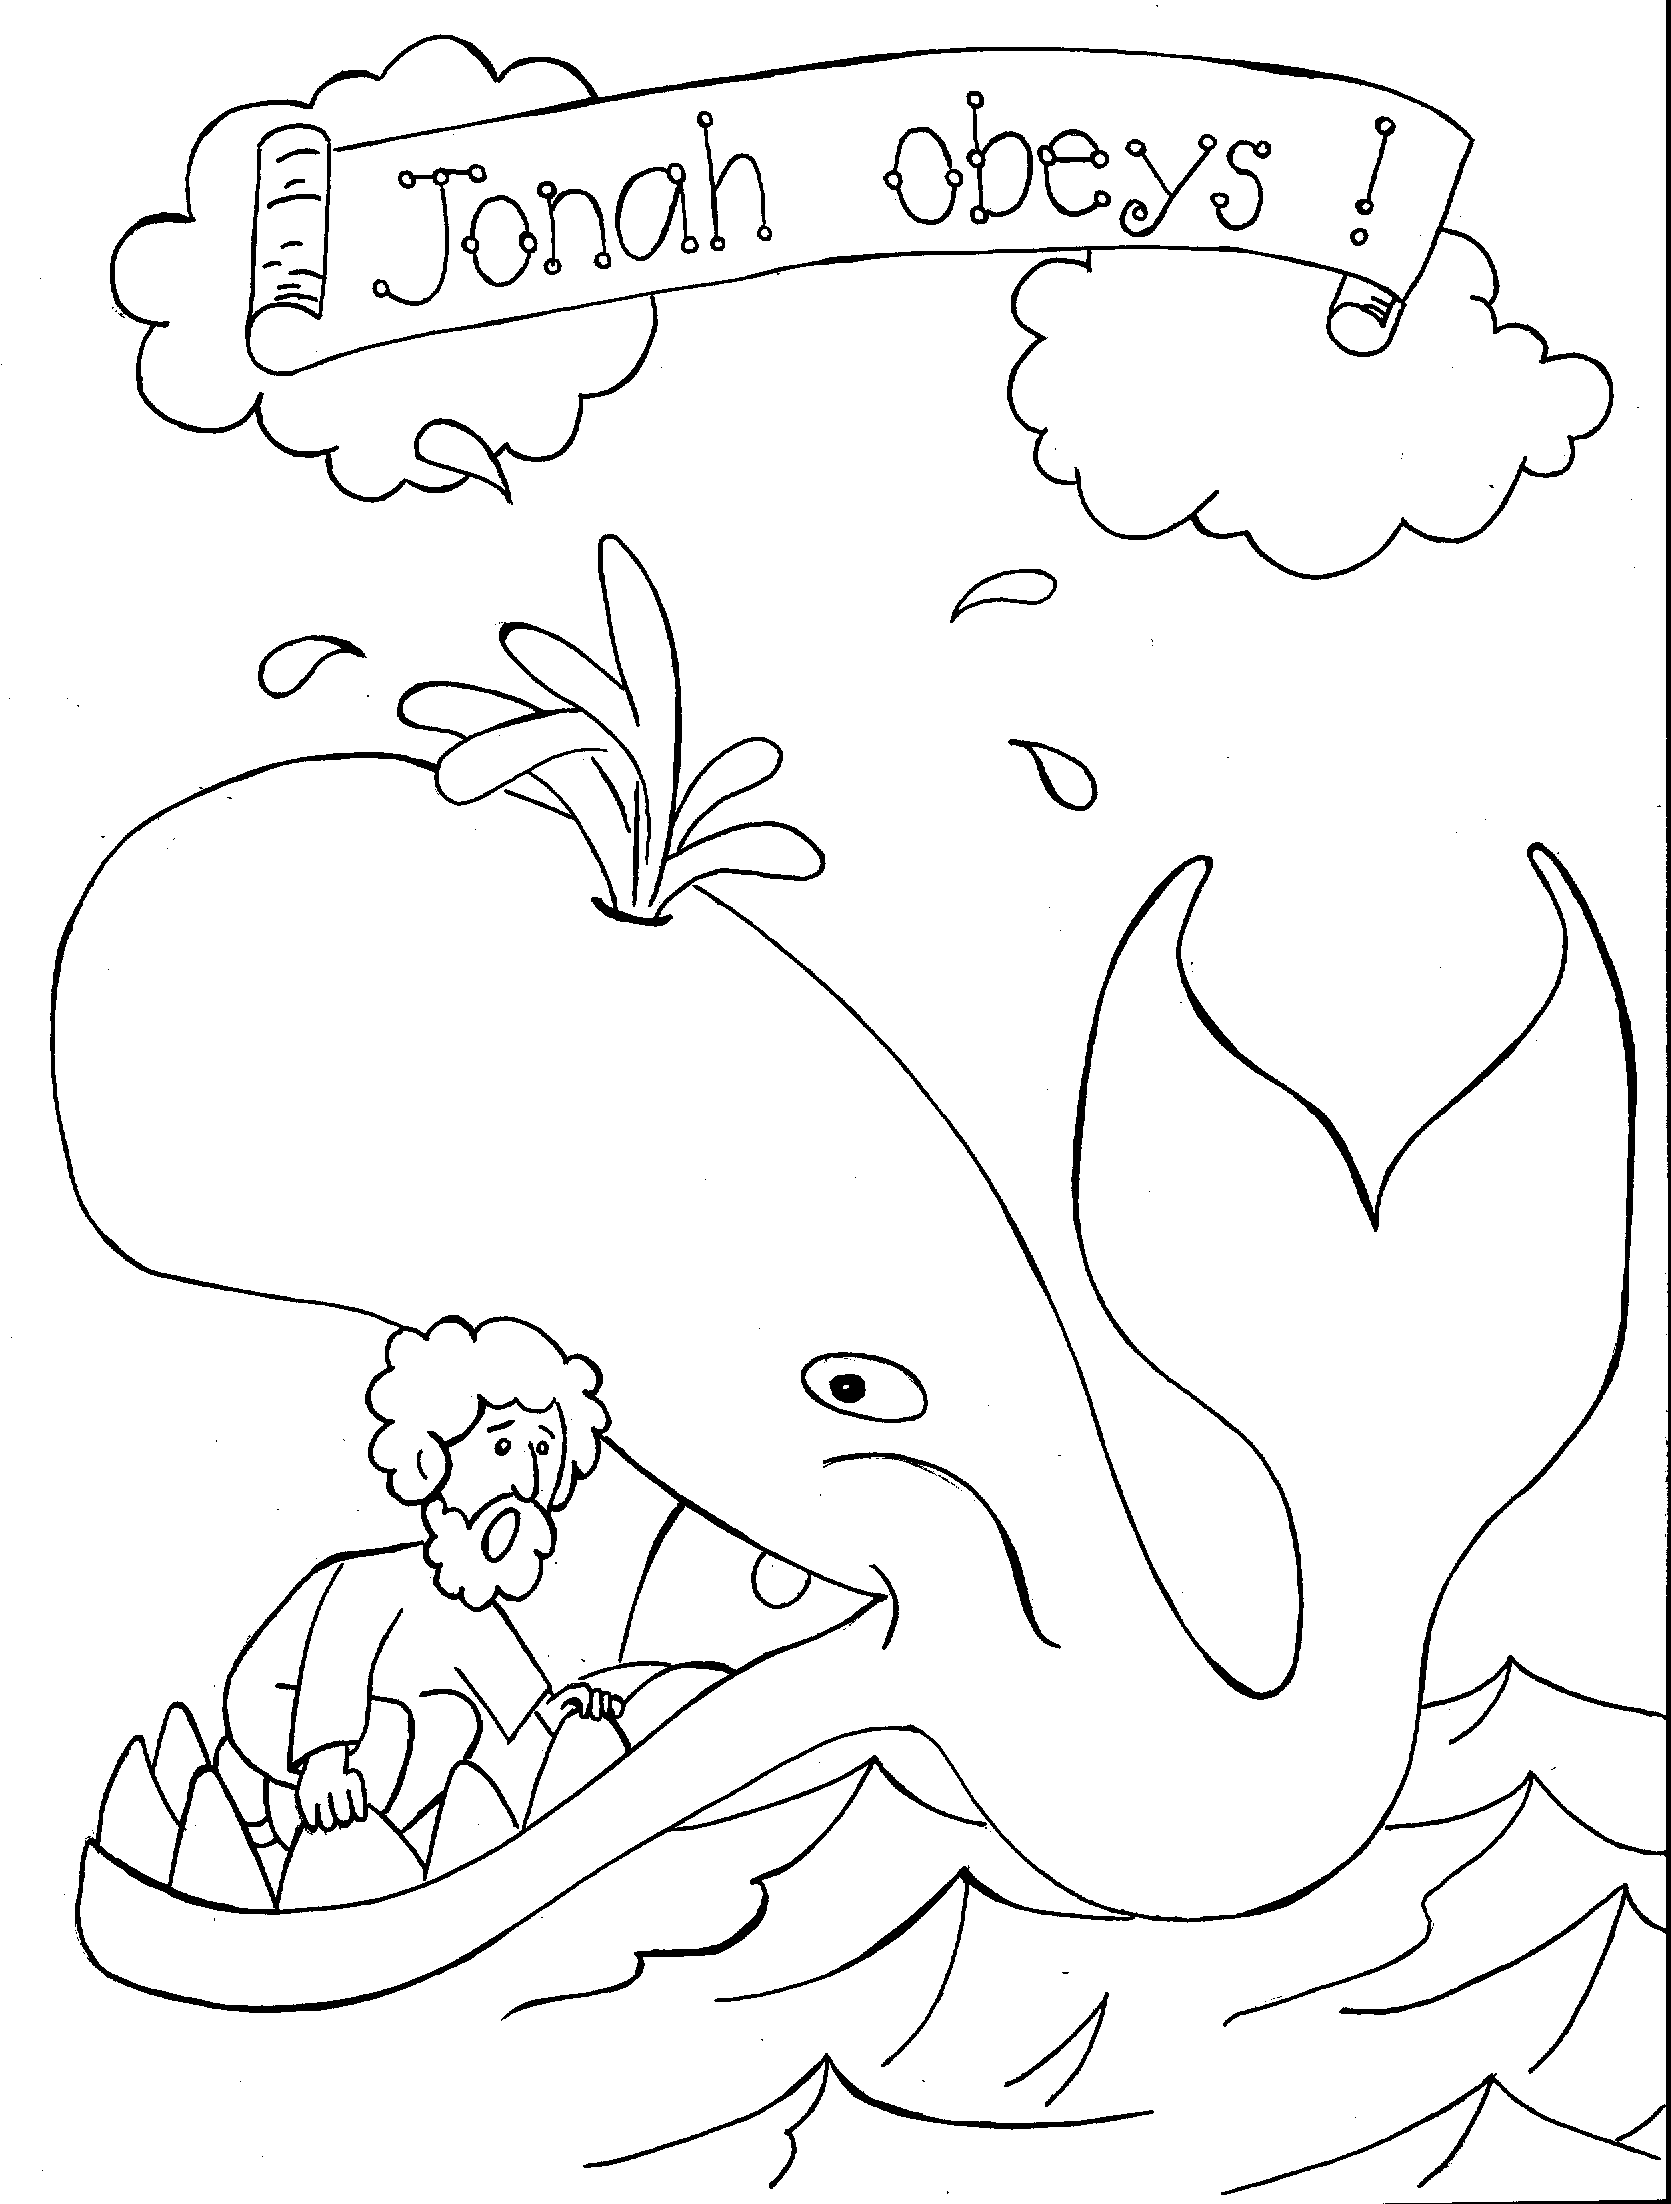 Jonah And The Whale Coloring Page 3